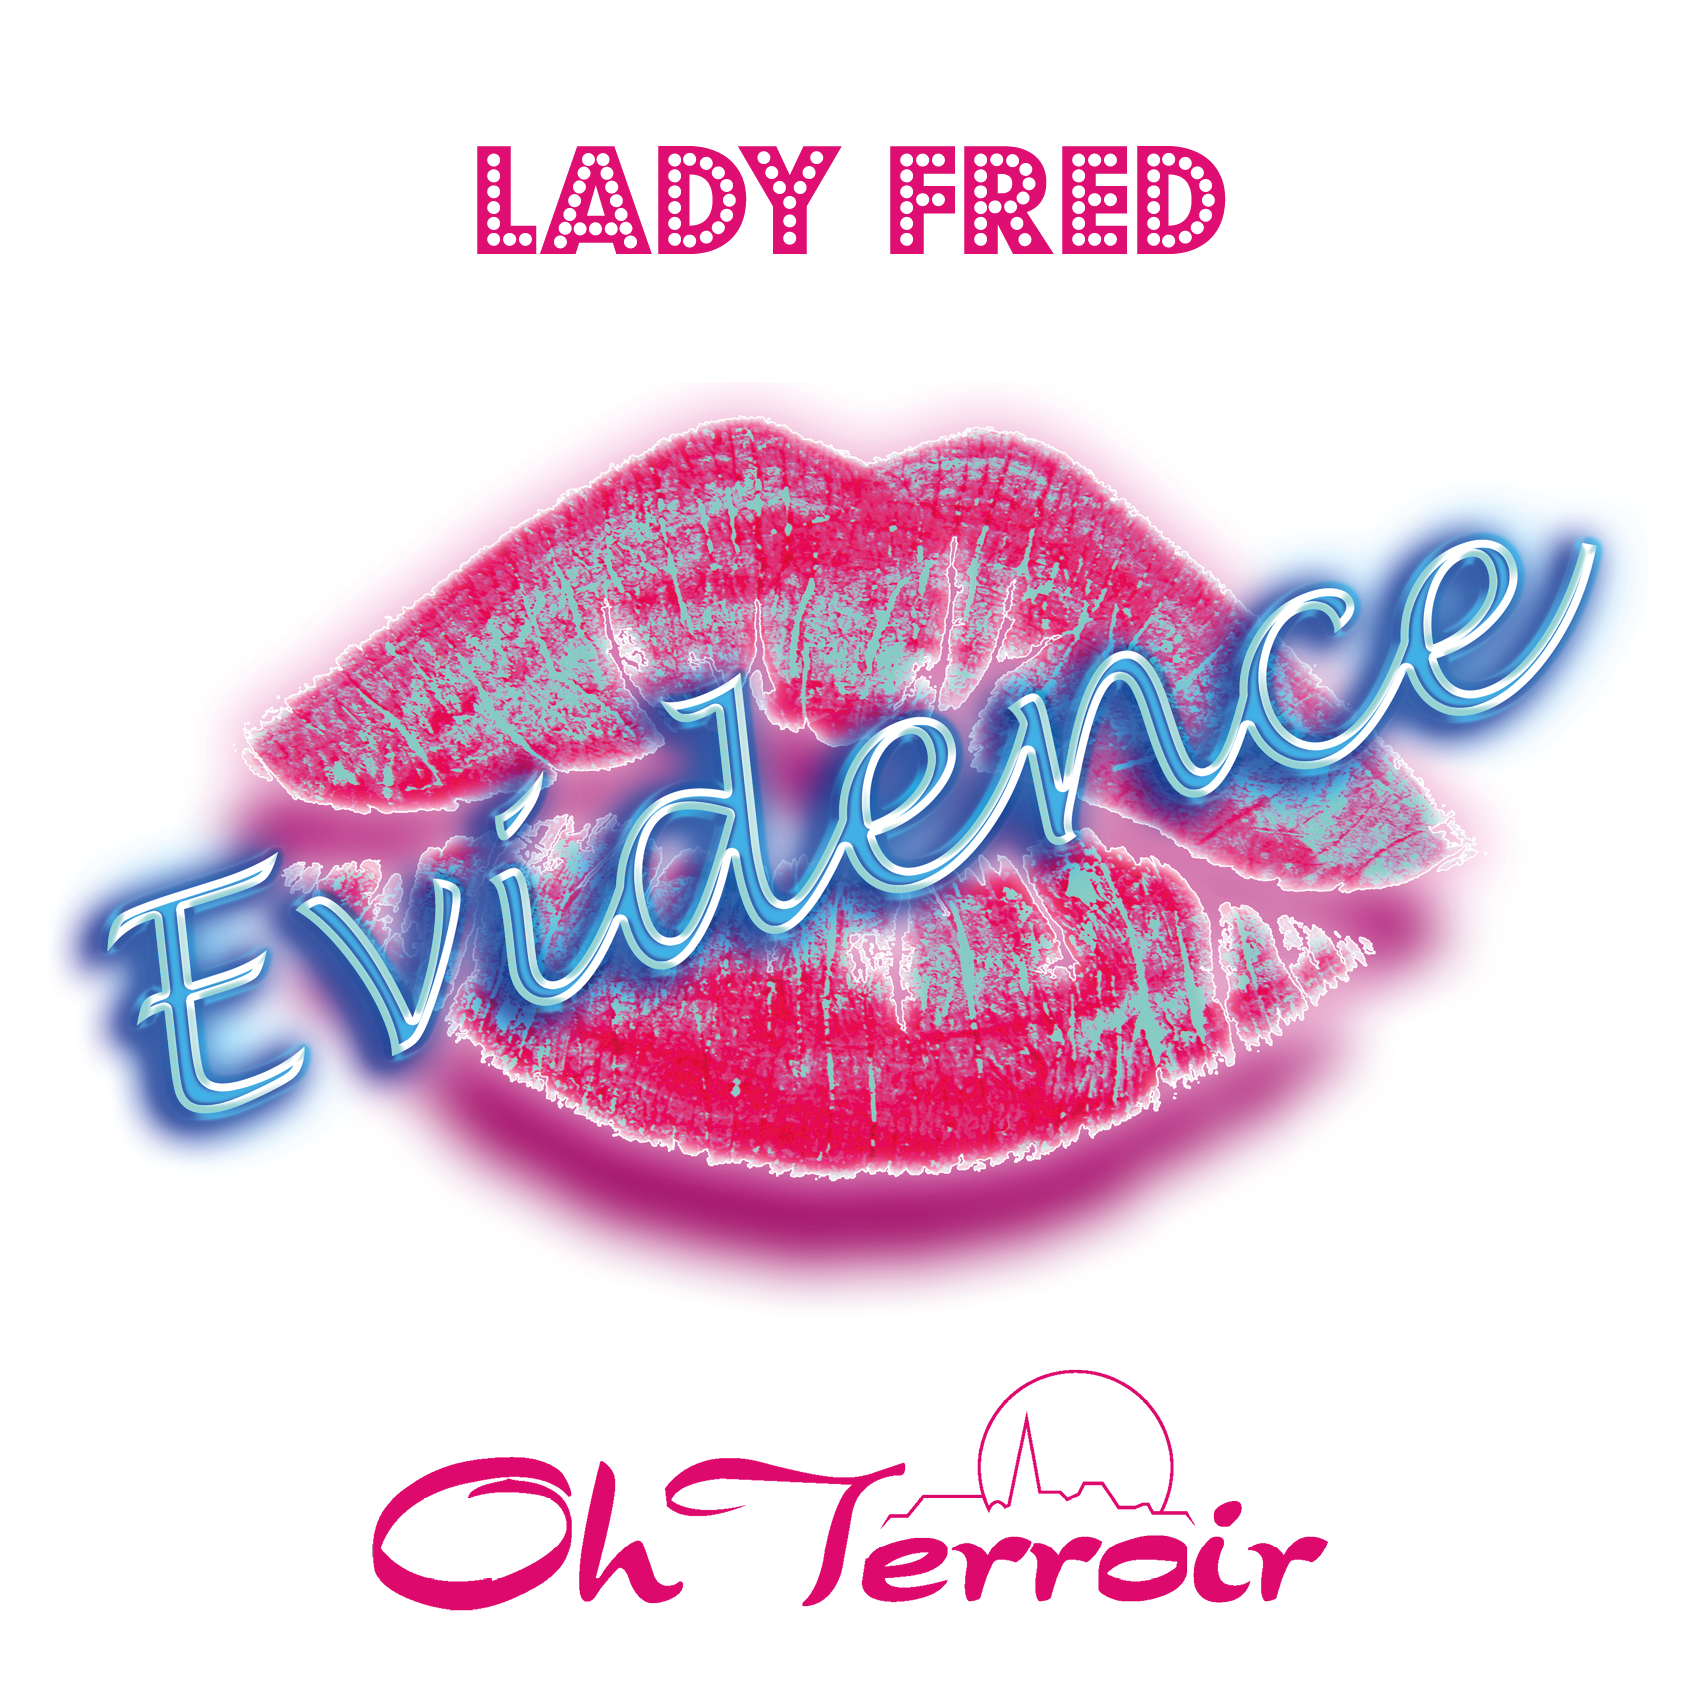 CABARET 'EVIDENCE' SPECTACLE 2018 - 2019